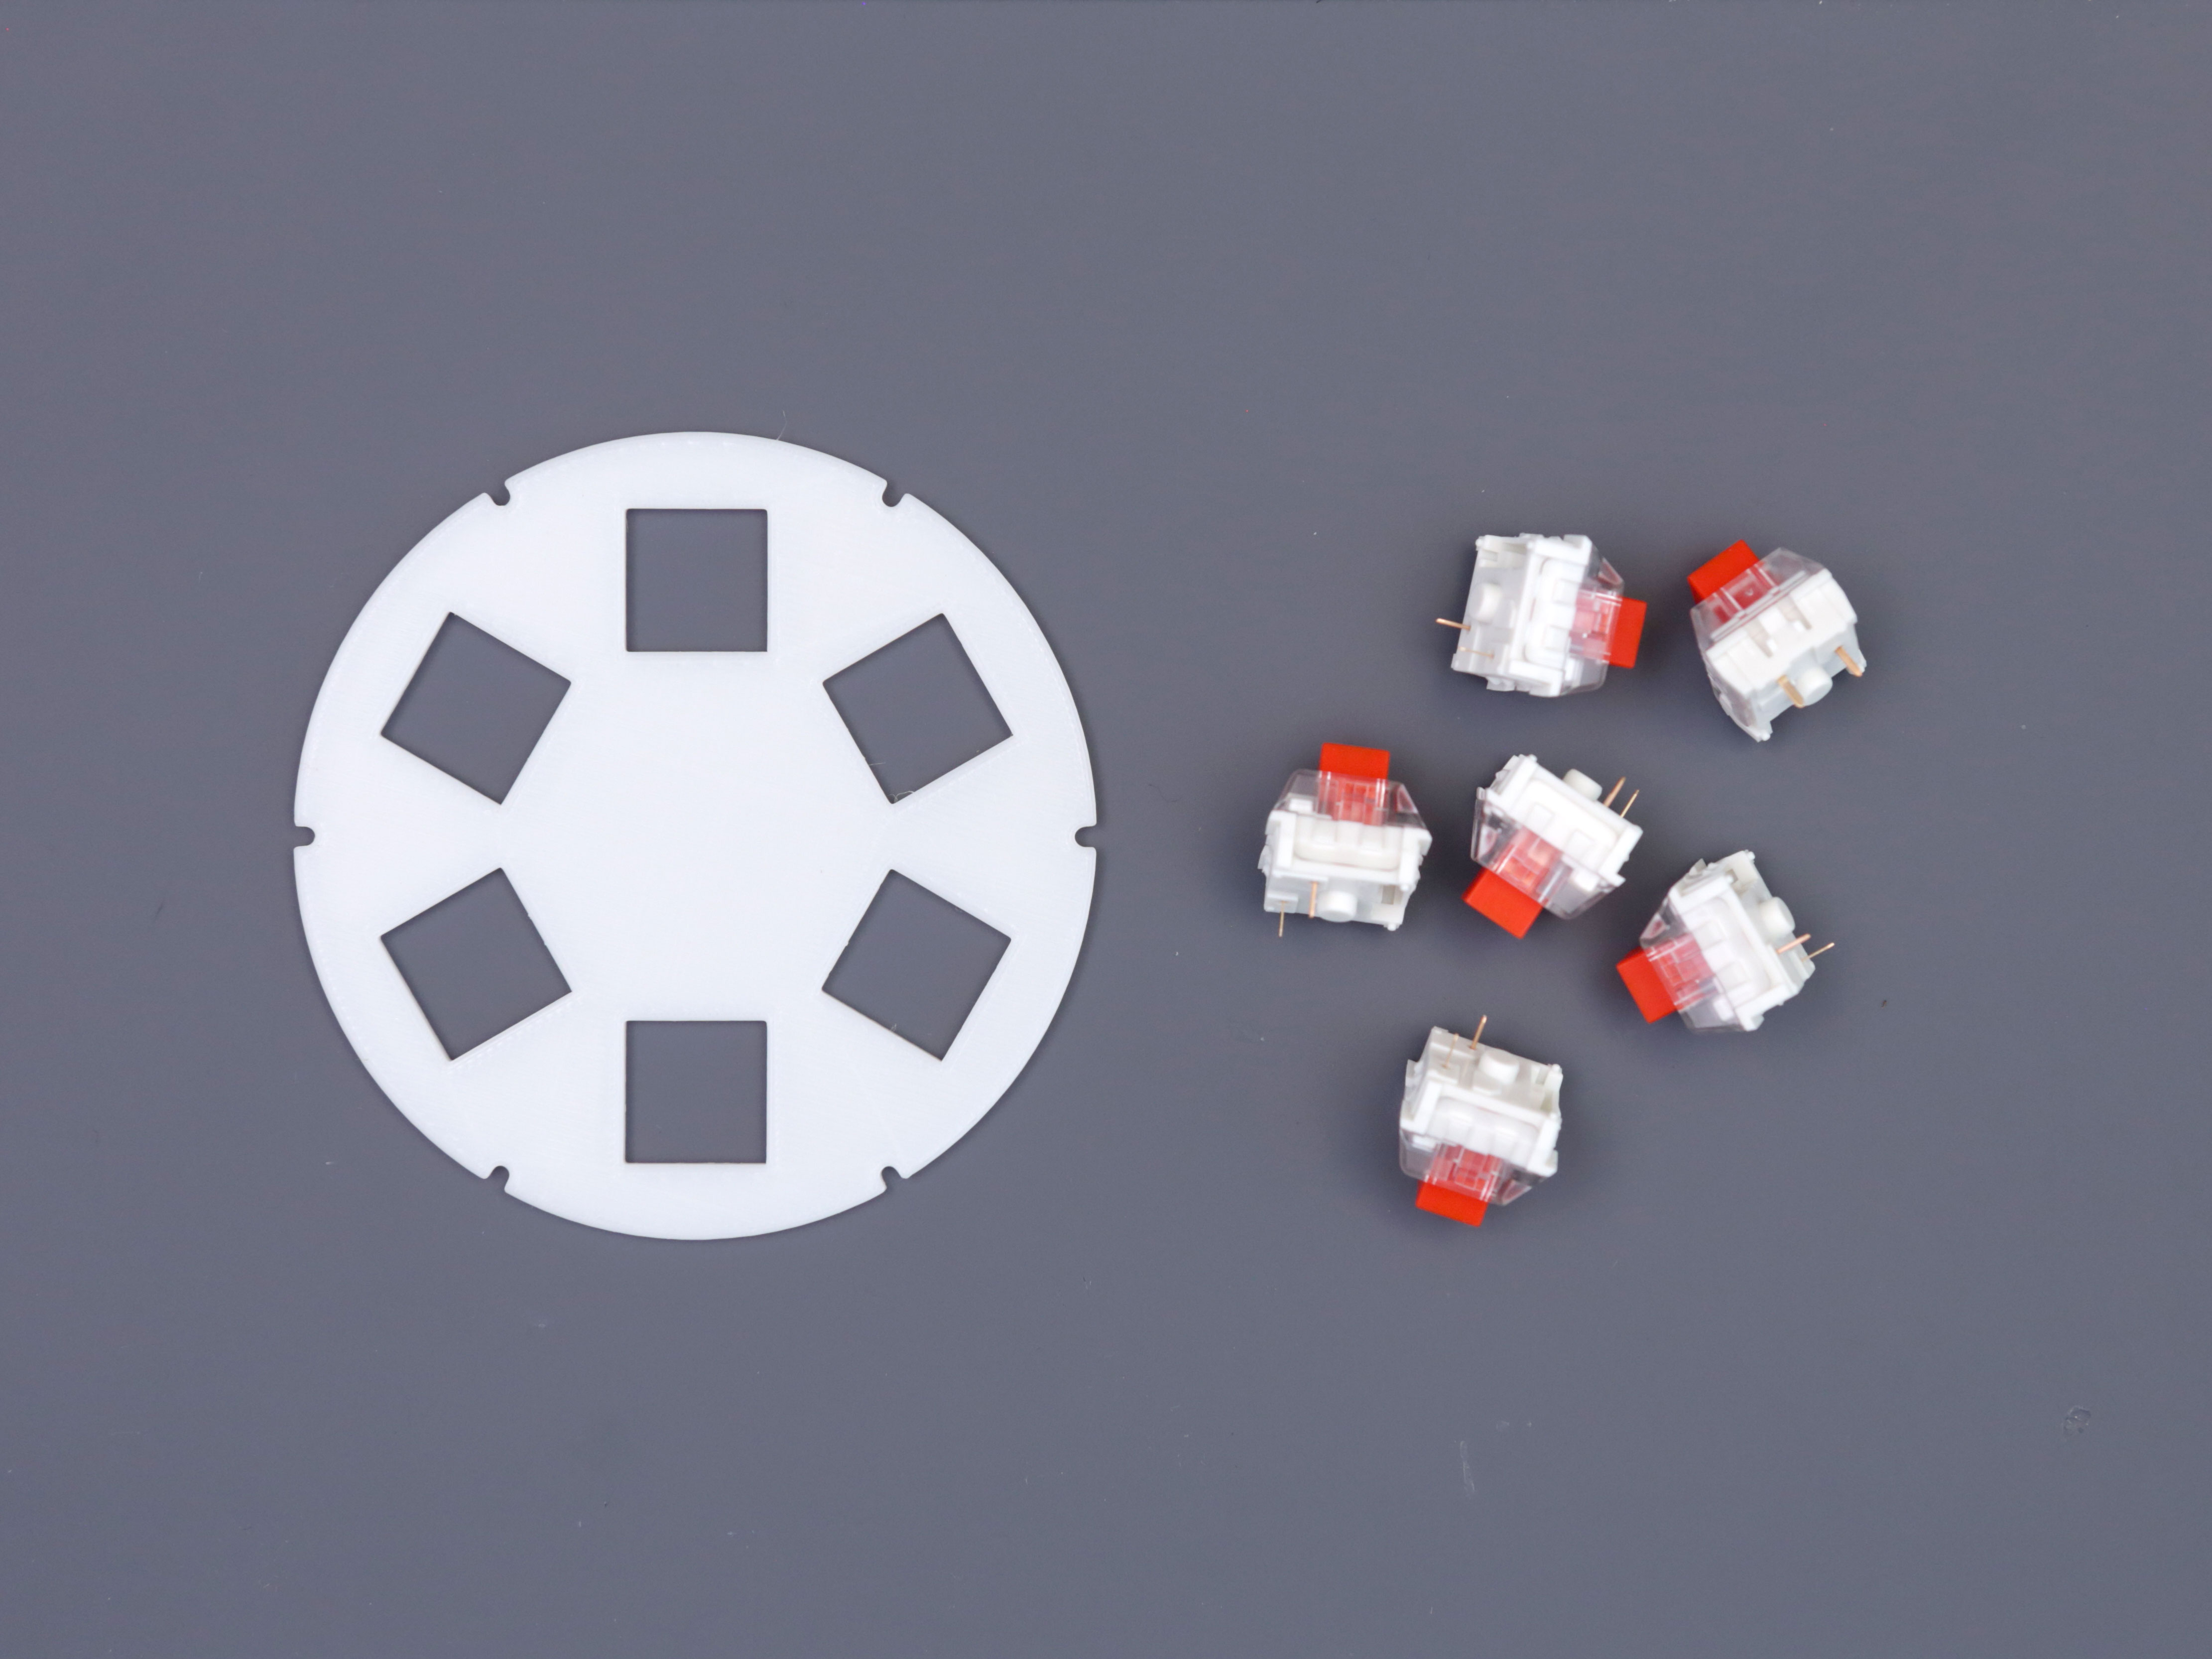 3d_printing_switches-plate-preinstall.jpg